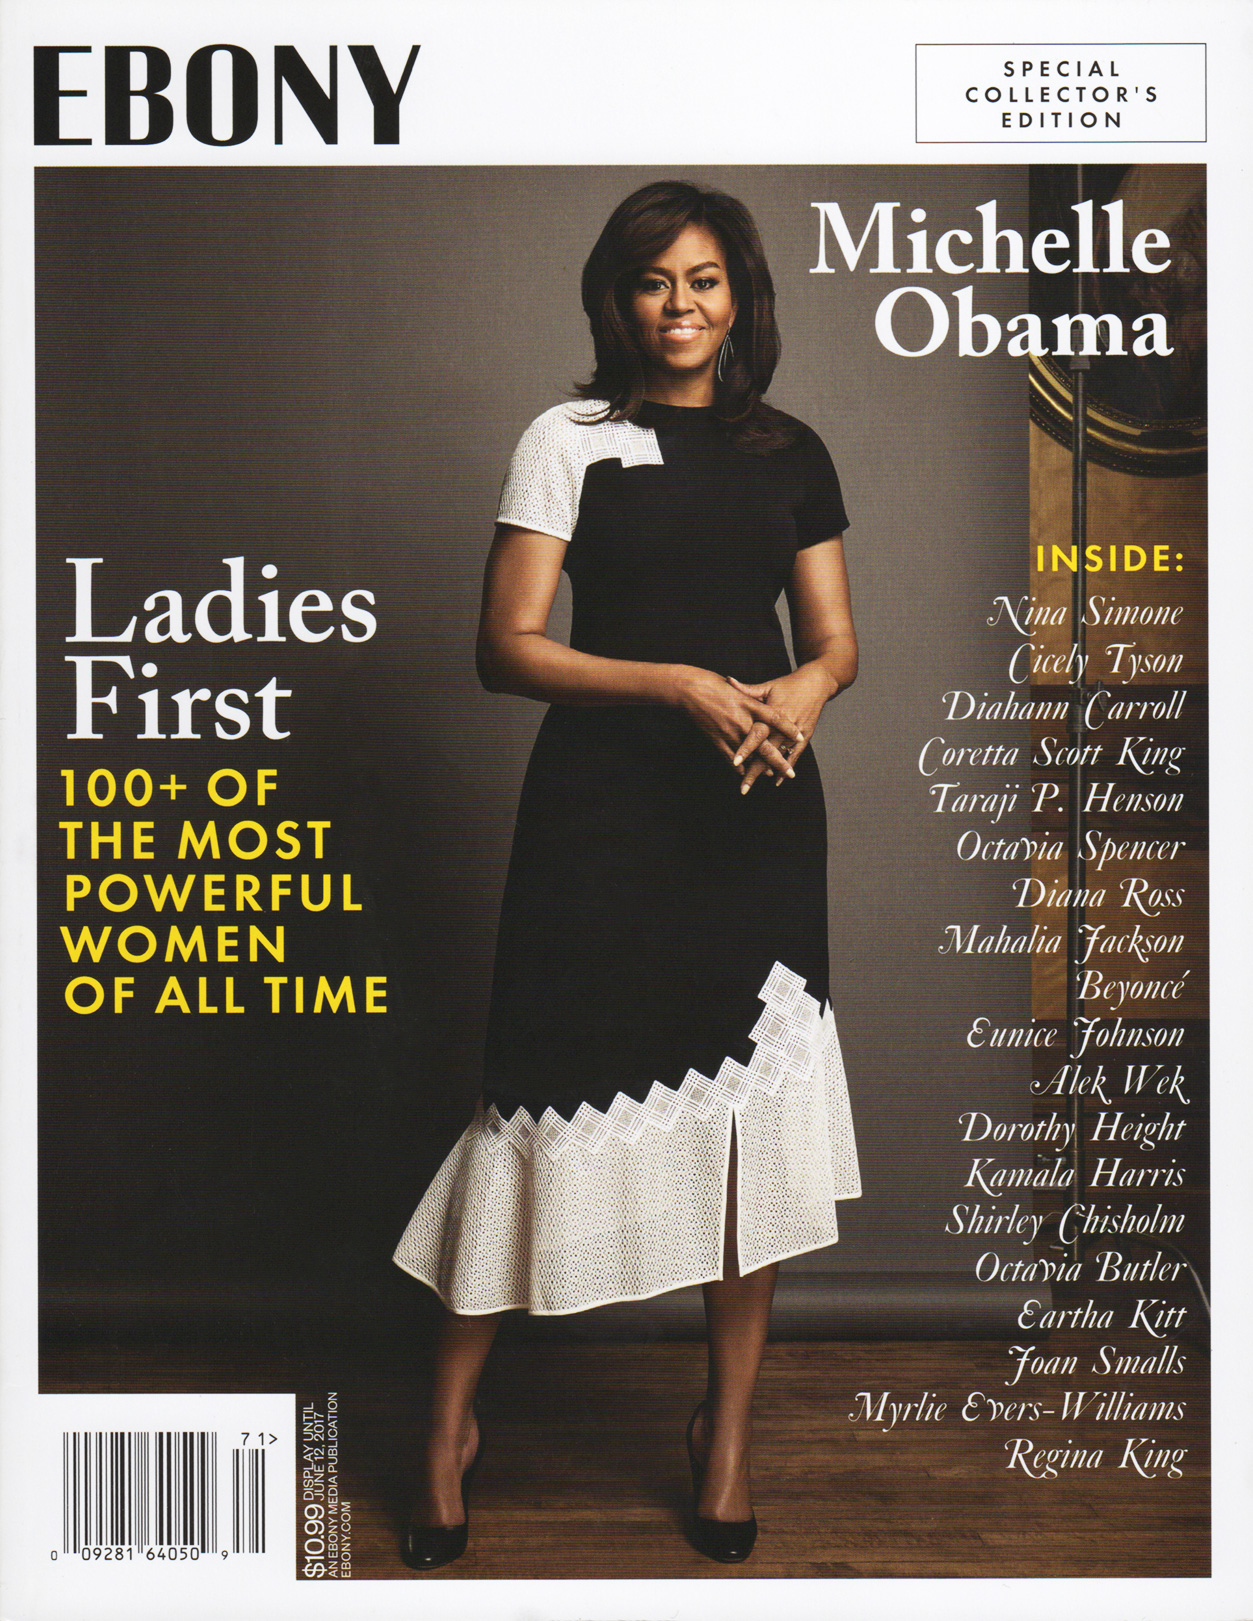 Ebony cover - 100+ Powerful Women